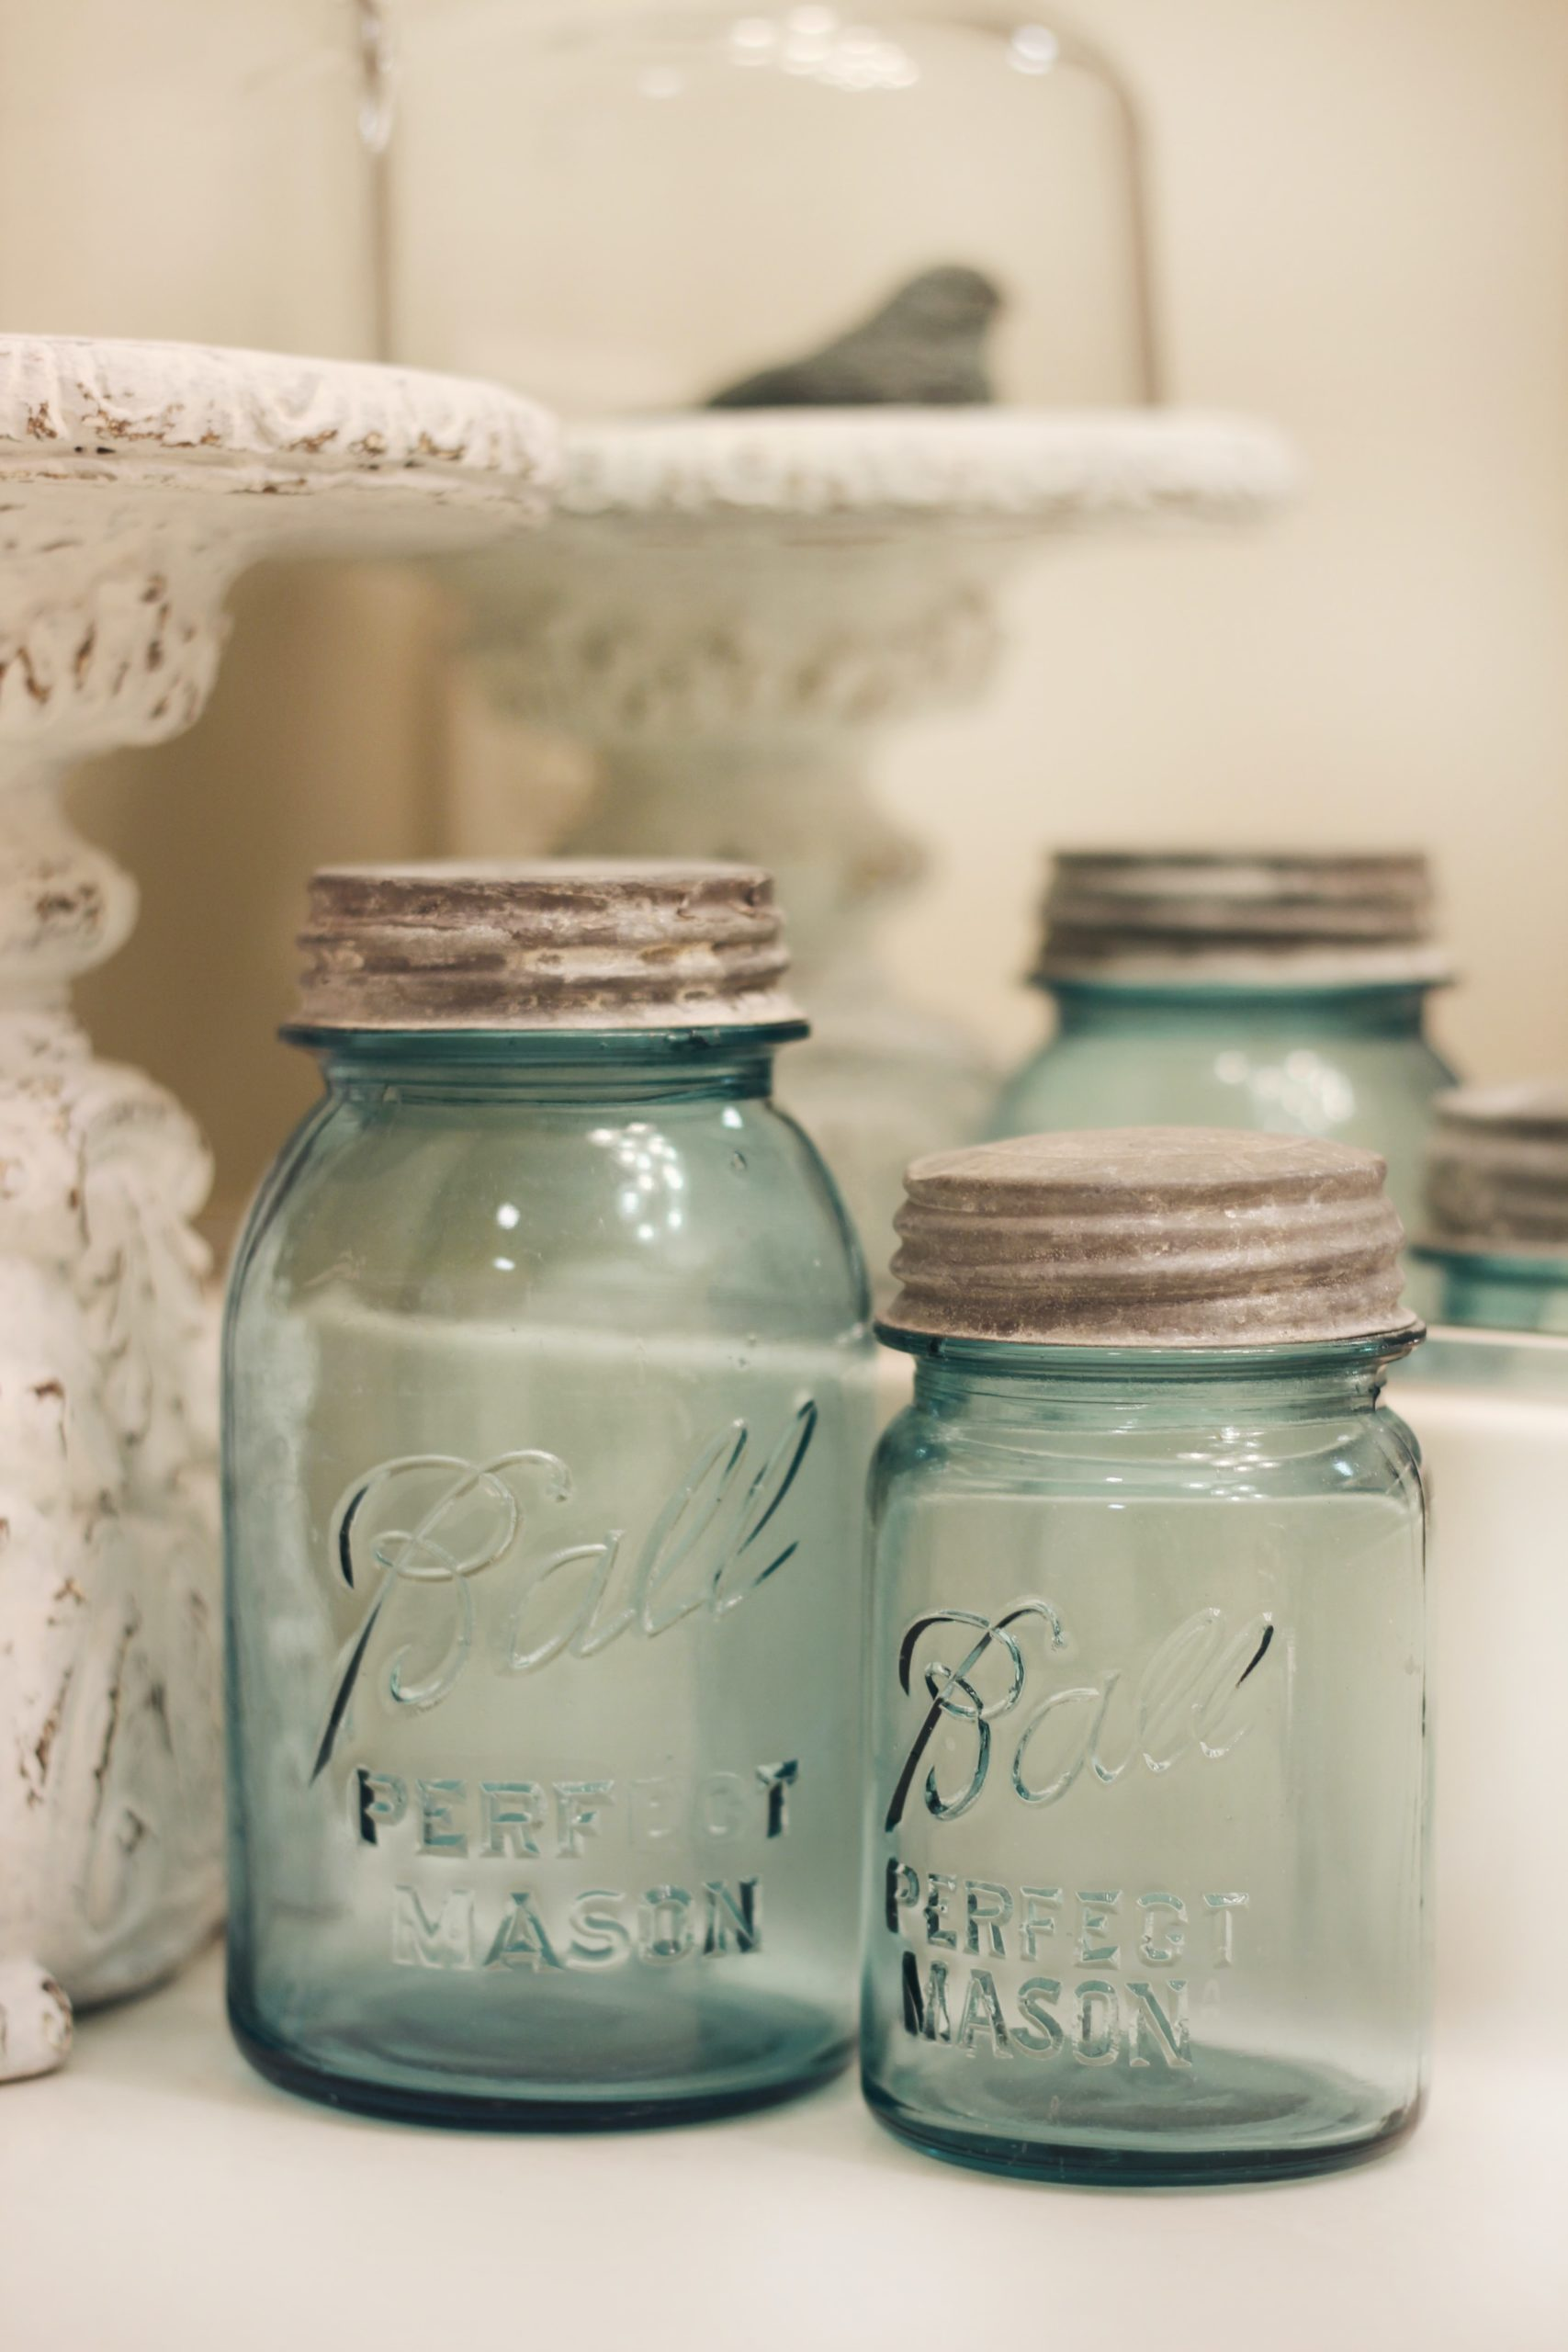 several empty canning jars in a decorative setting used for touch up painting